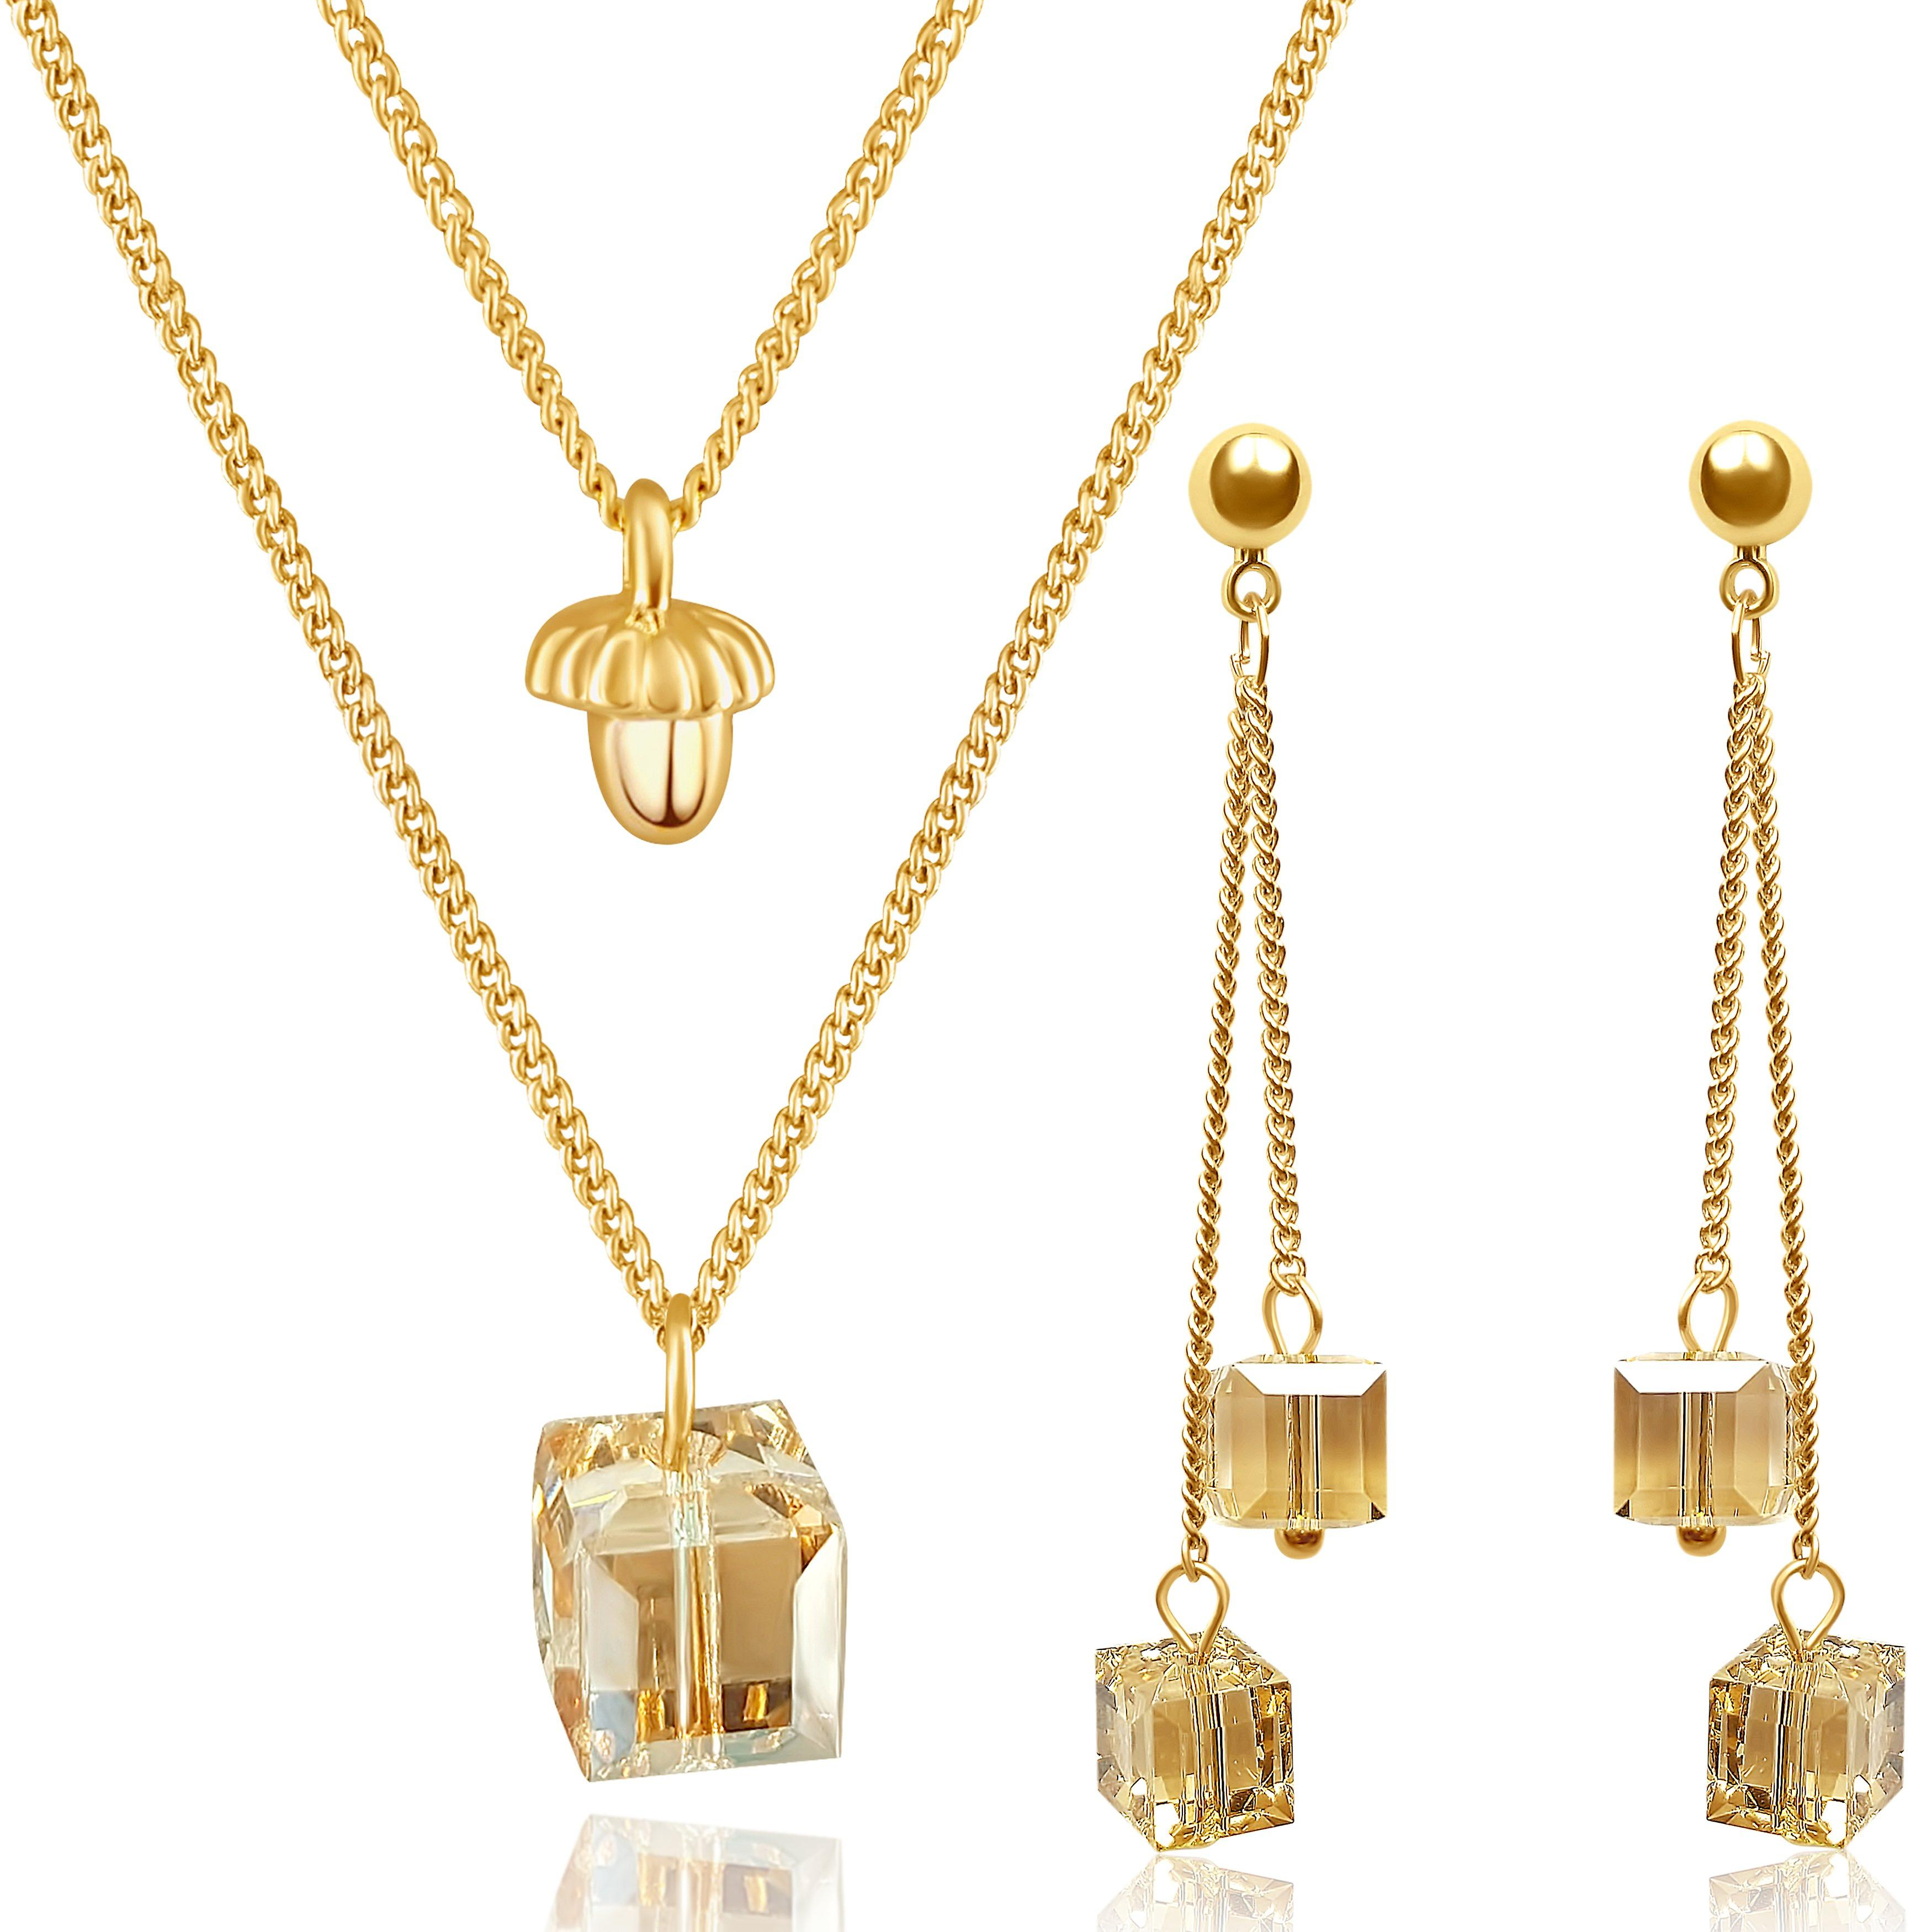 Jewellery set gold plated earrings and necklace with swarovski crystal. jewellery box. by 2splendid. enqz007